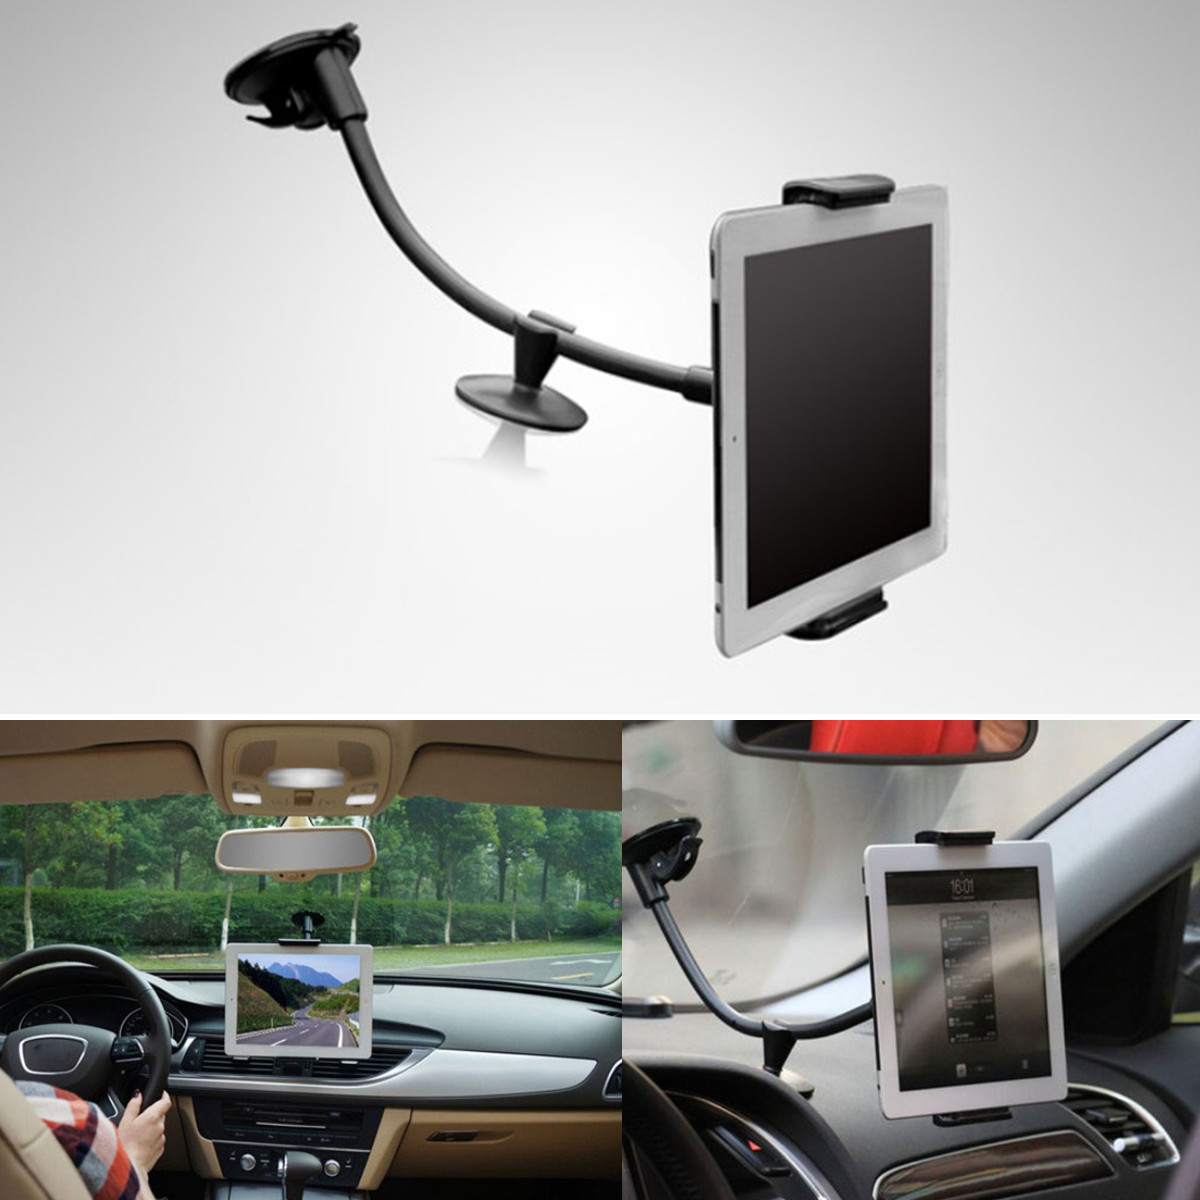 New Arrival Universal 360 2in1 Car Windshield Mount Holder Stand for Mobile Phone Tablet PC GPS 7-10 for iPad for Amazon Kindle(China (Mainland))